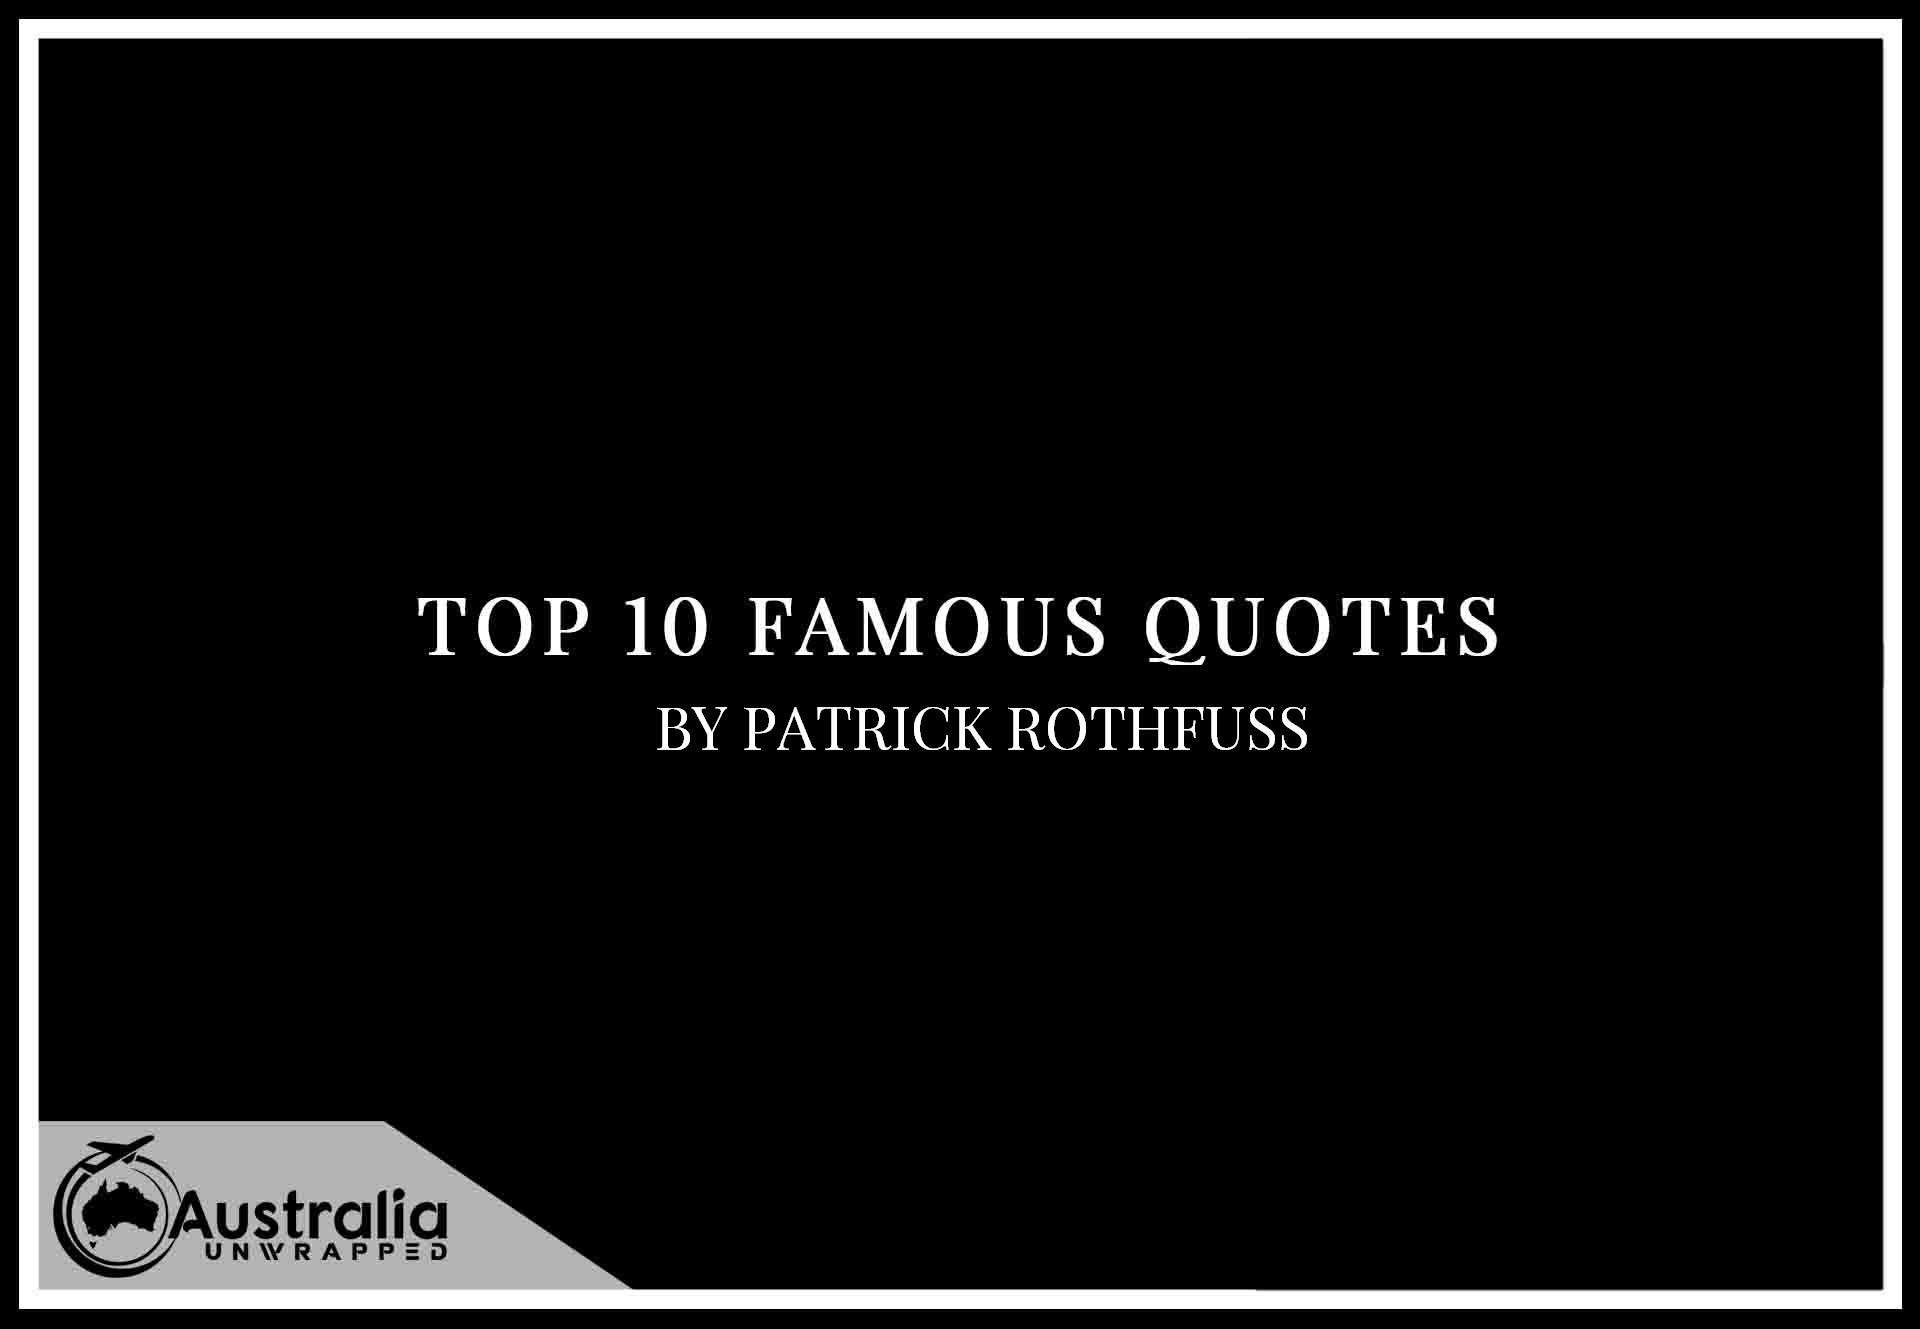 Top 10 Famous Quotes by Author Patrick Rothfuss